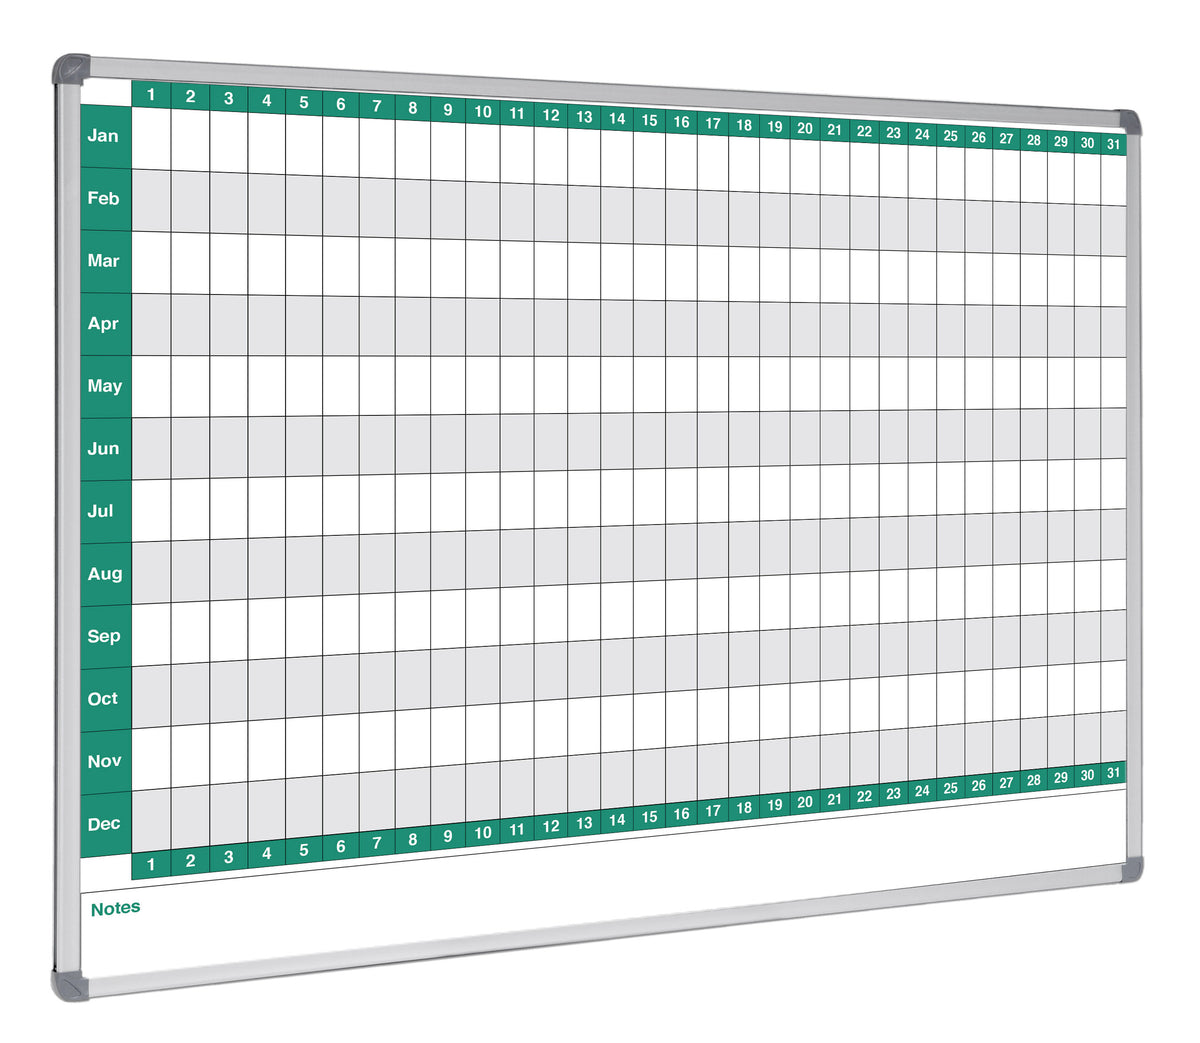 CUSTOM PRINTED WHITEBOARDS AND GLASSBOARDS